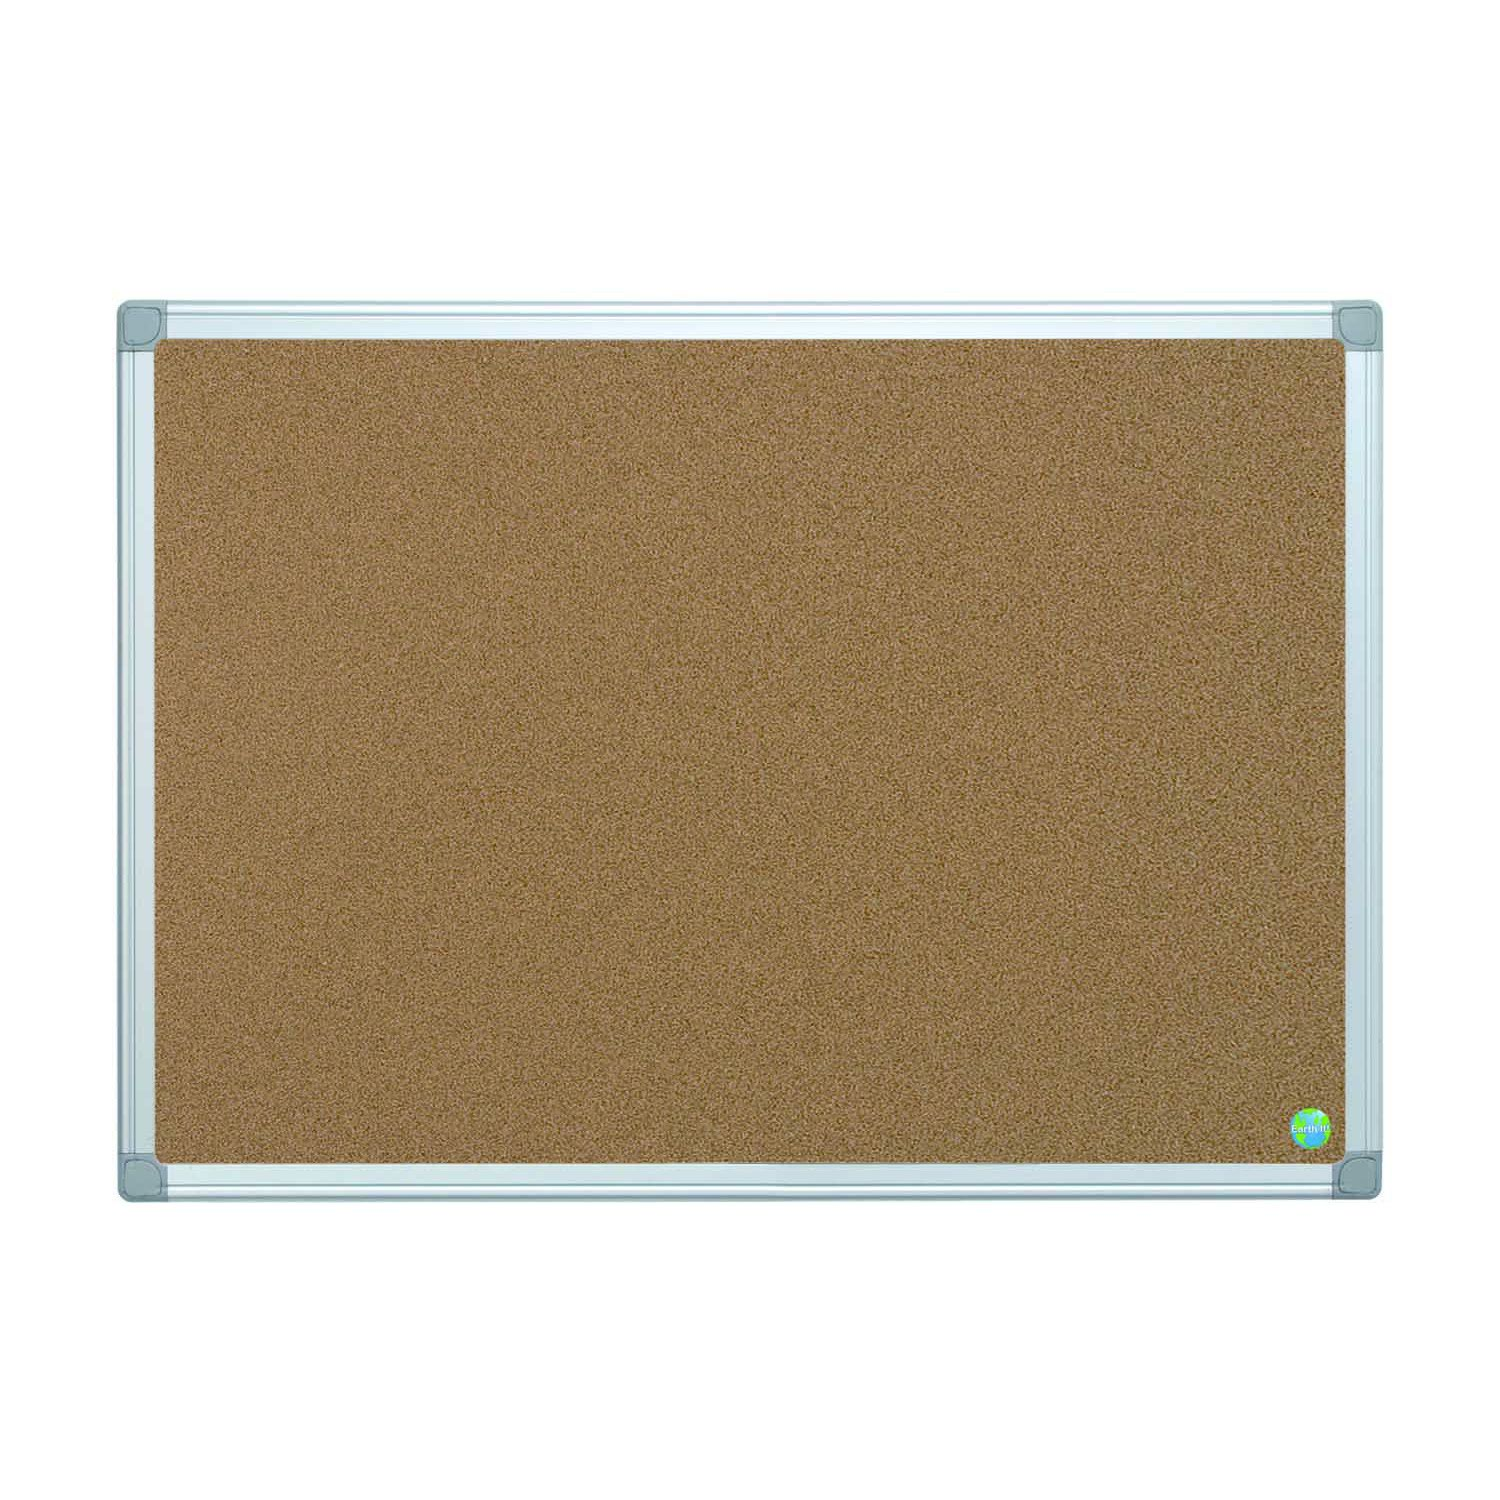 Bi-Office Earth-It Aluminium Frame Cork Noticeboard 900x600mm CA031790